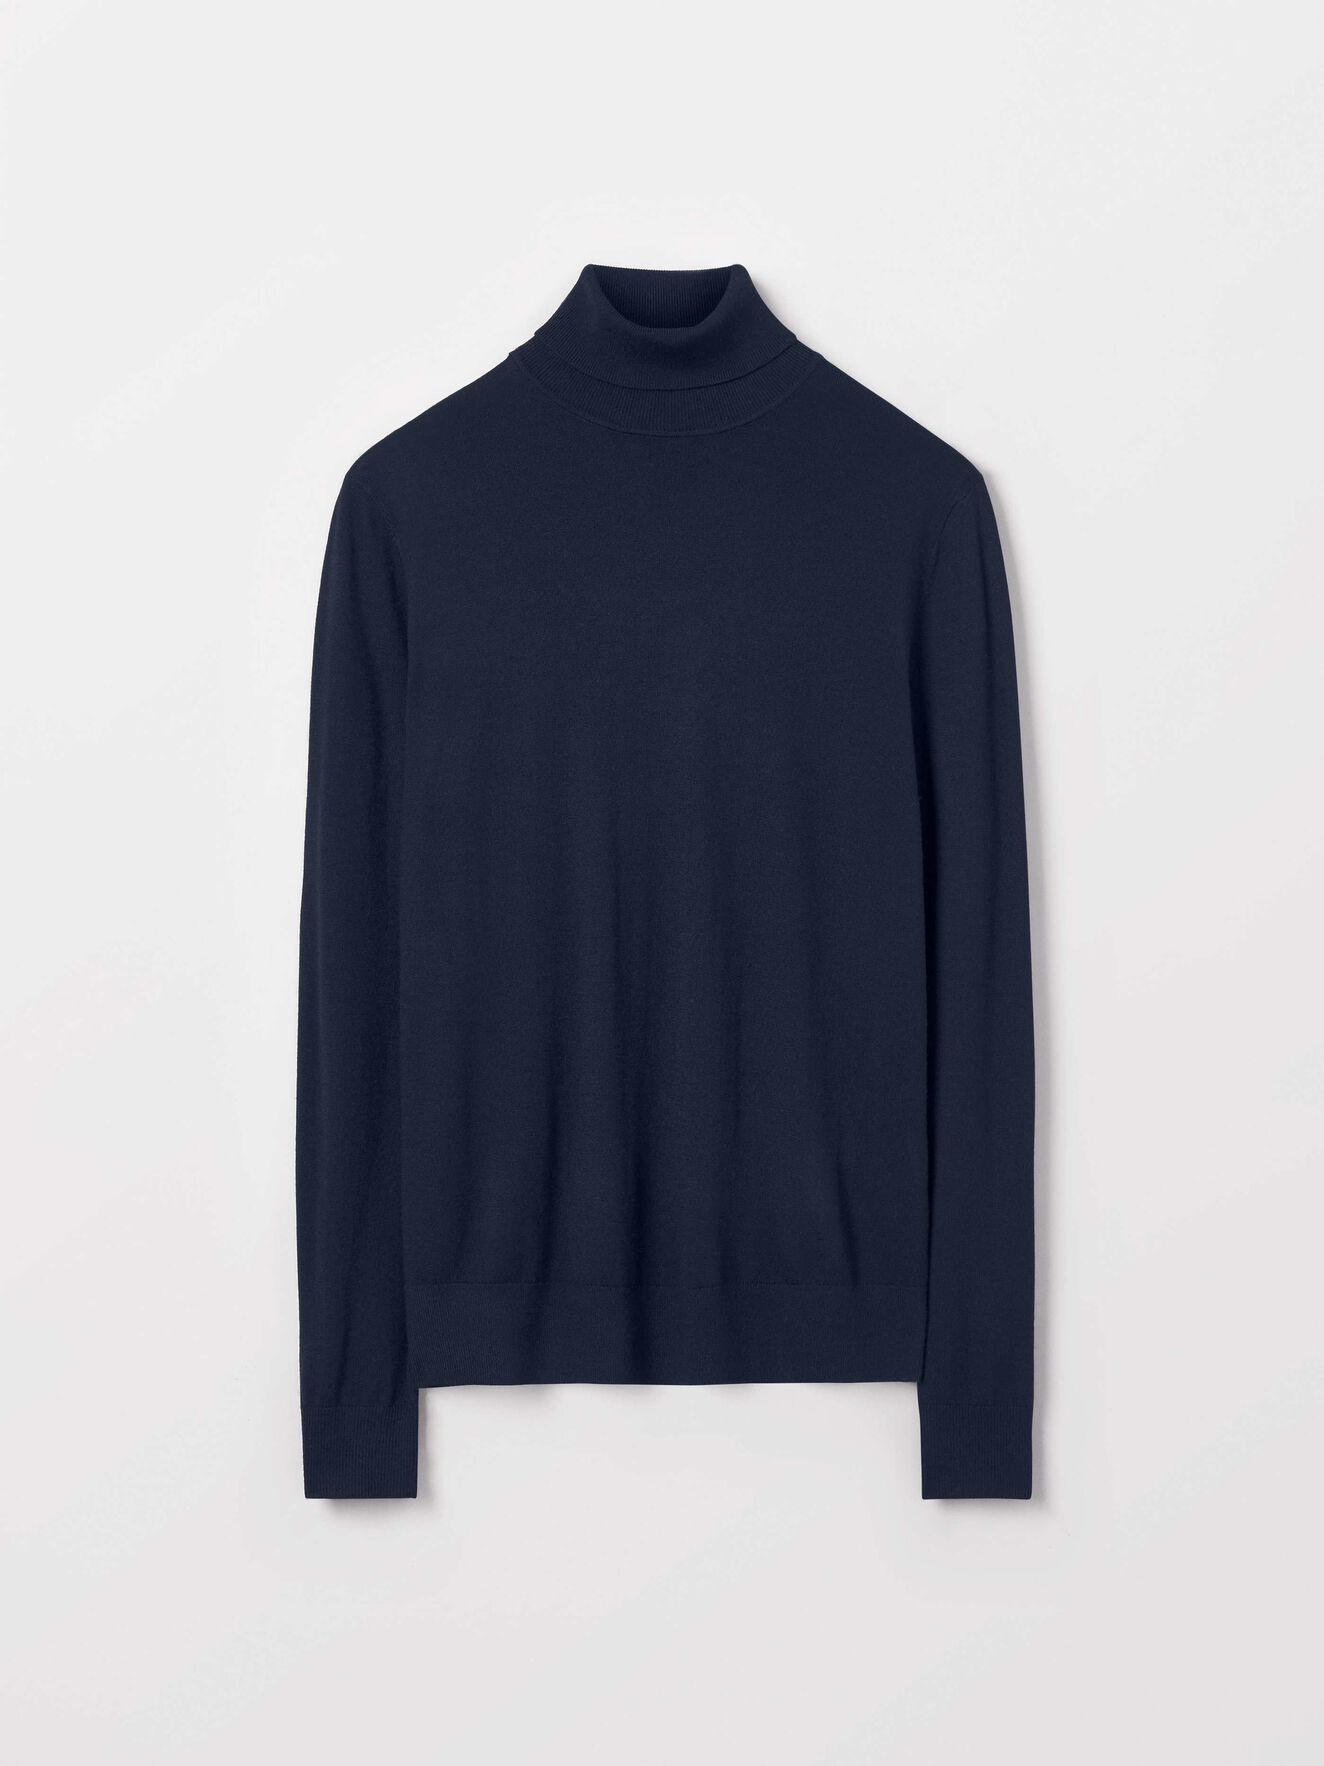 Nevile Pullover in Light Ink from Tiger of Sweden